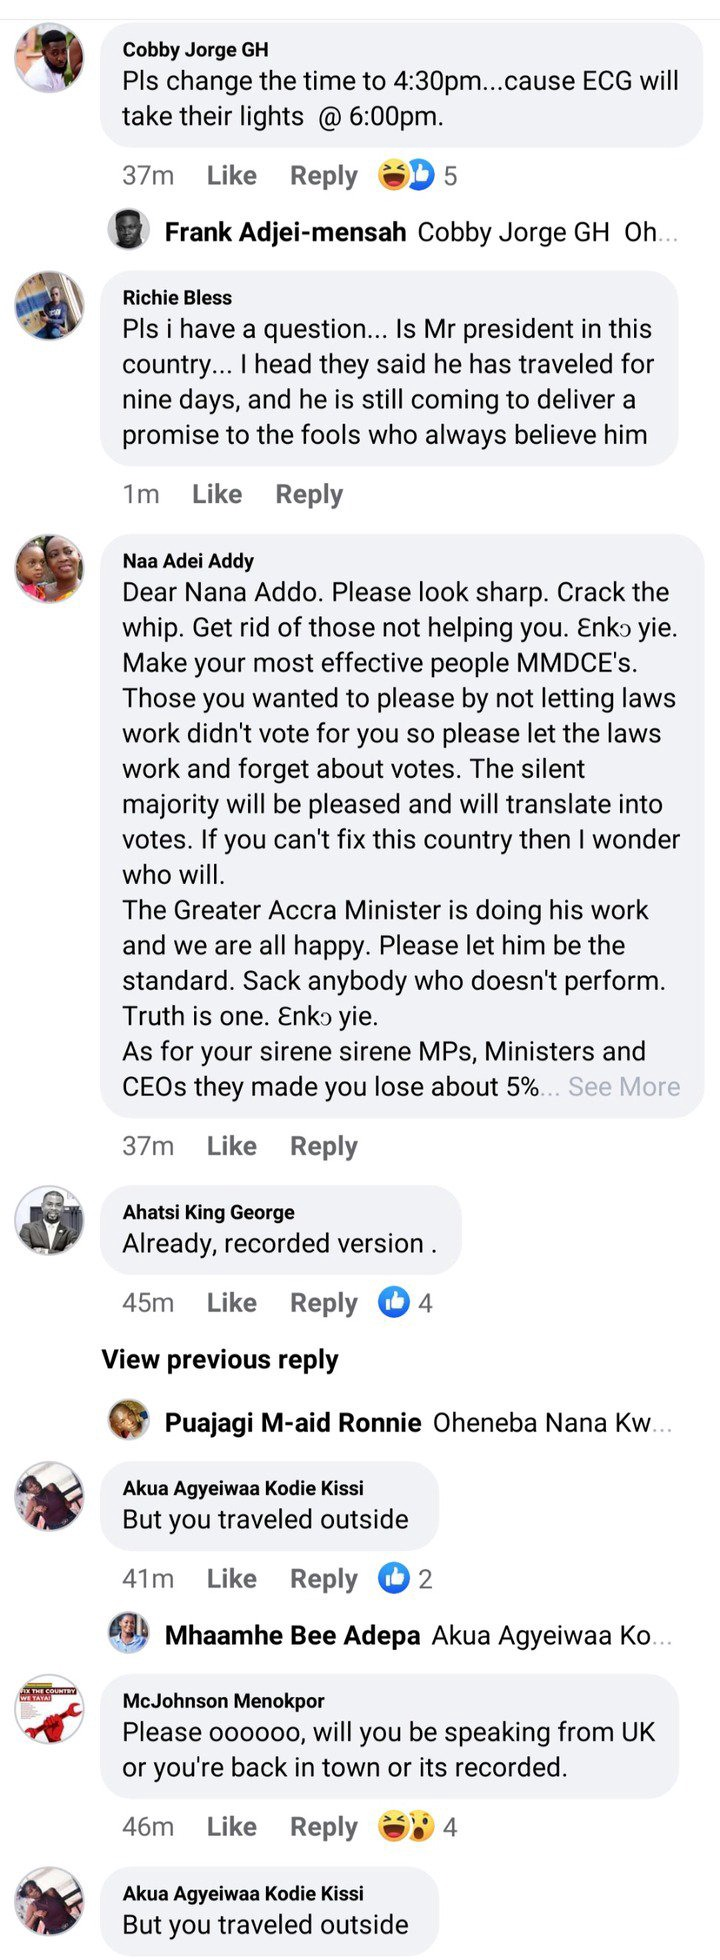 6aa6bad6c517d9e54d41716c9dd323e7 6?source=nlp&quality=uhq&format=jpeg&resize=720 - FixTheCountry: We Dont Need This Address - Ghanaians React To 25th COVID-19 Address